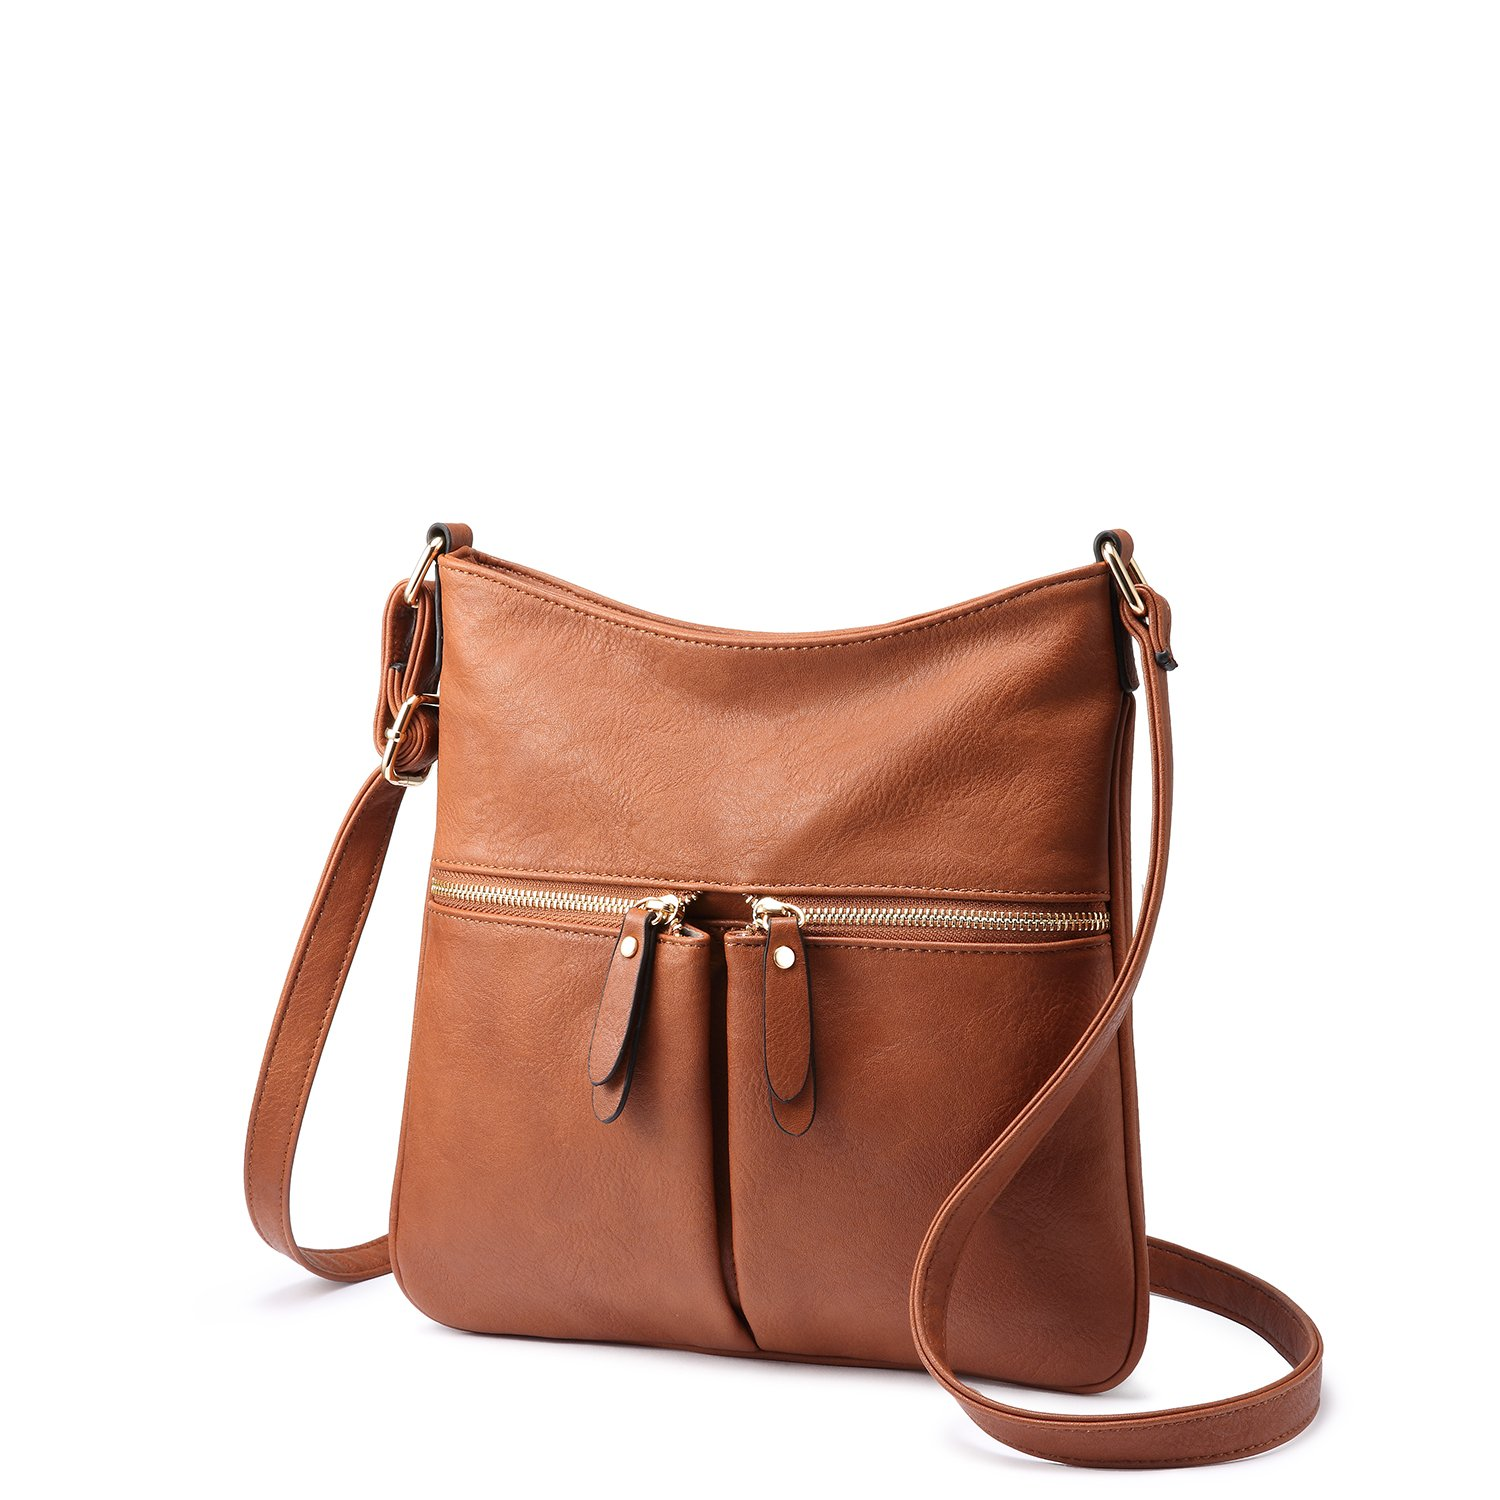 ea4733a2279e Crossbody Bags for Women Shoulder Bag Faux Leather Ladies Bag with  Adjustable Long Strap